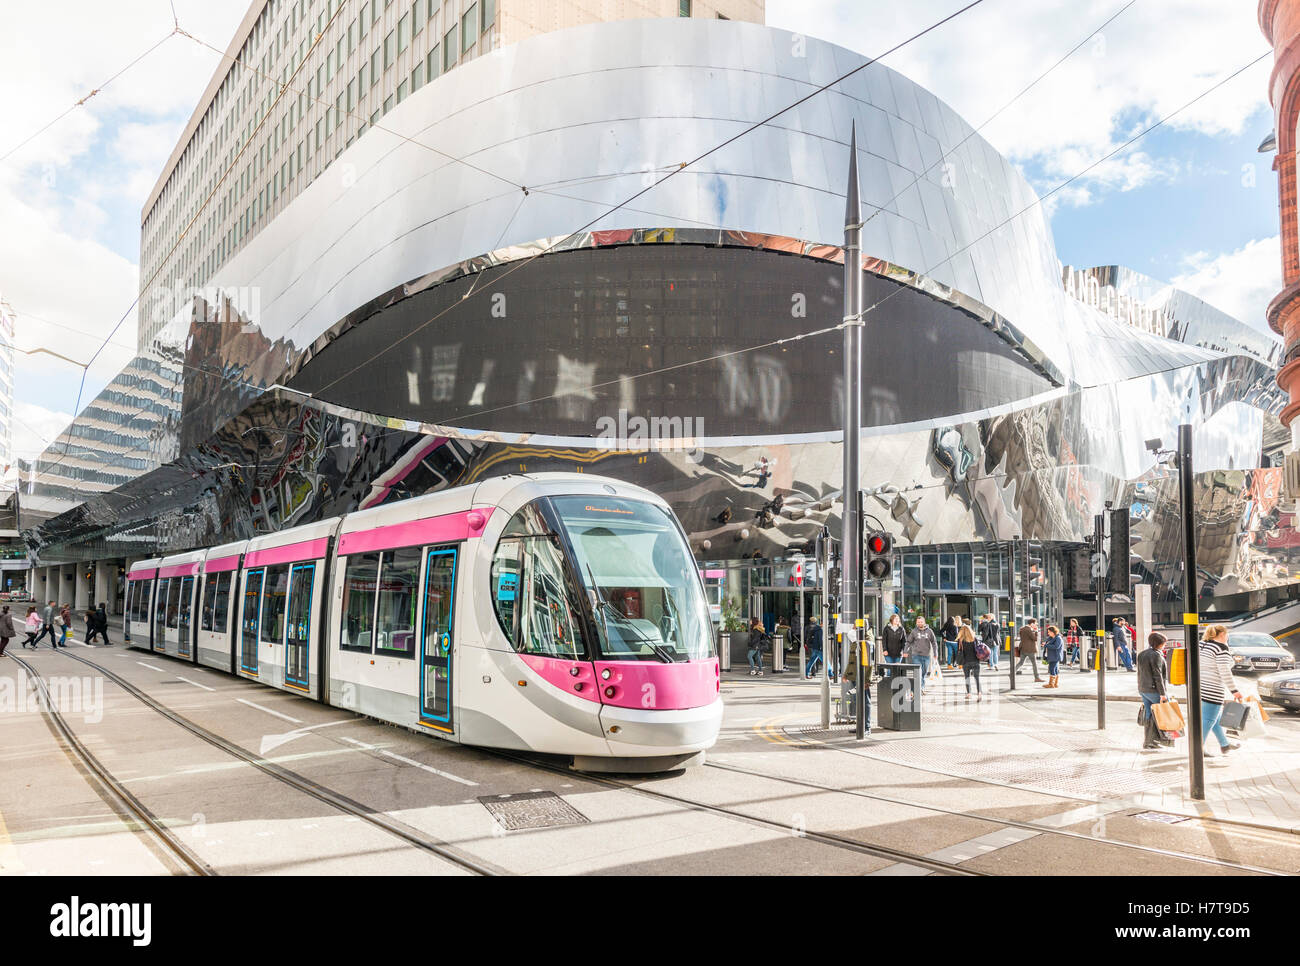 A tram in Birmingham City Centre alongside New Street train station, England. Editorial usage only. - Stock Image